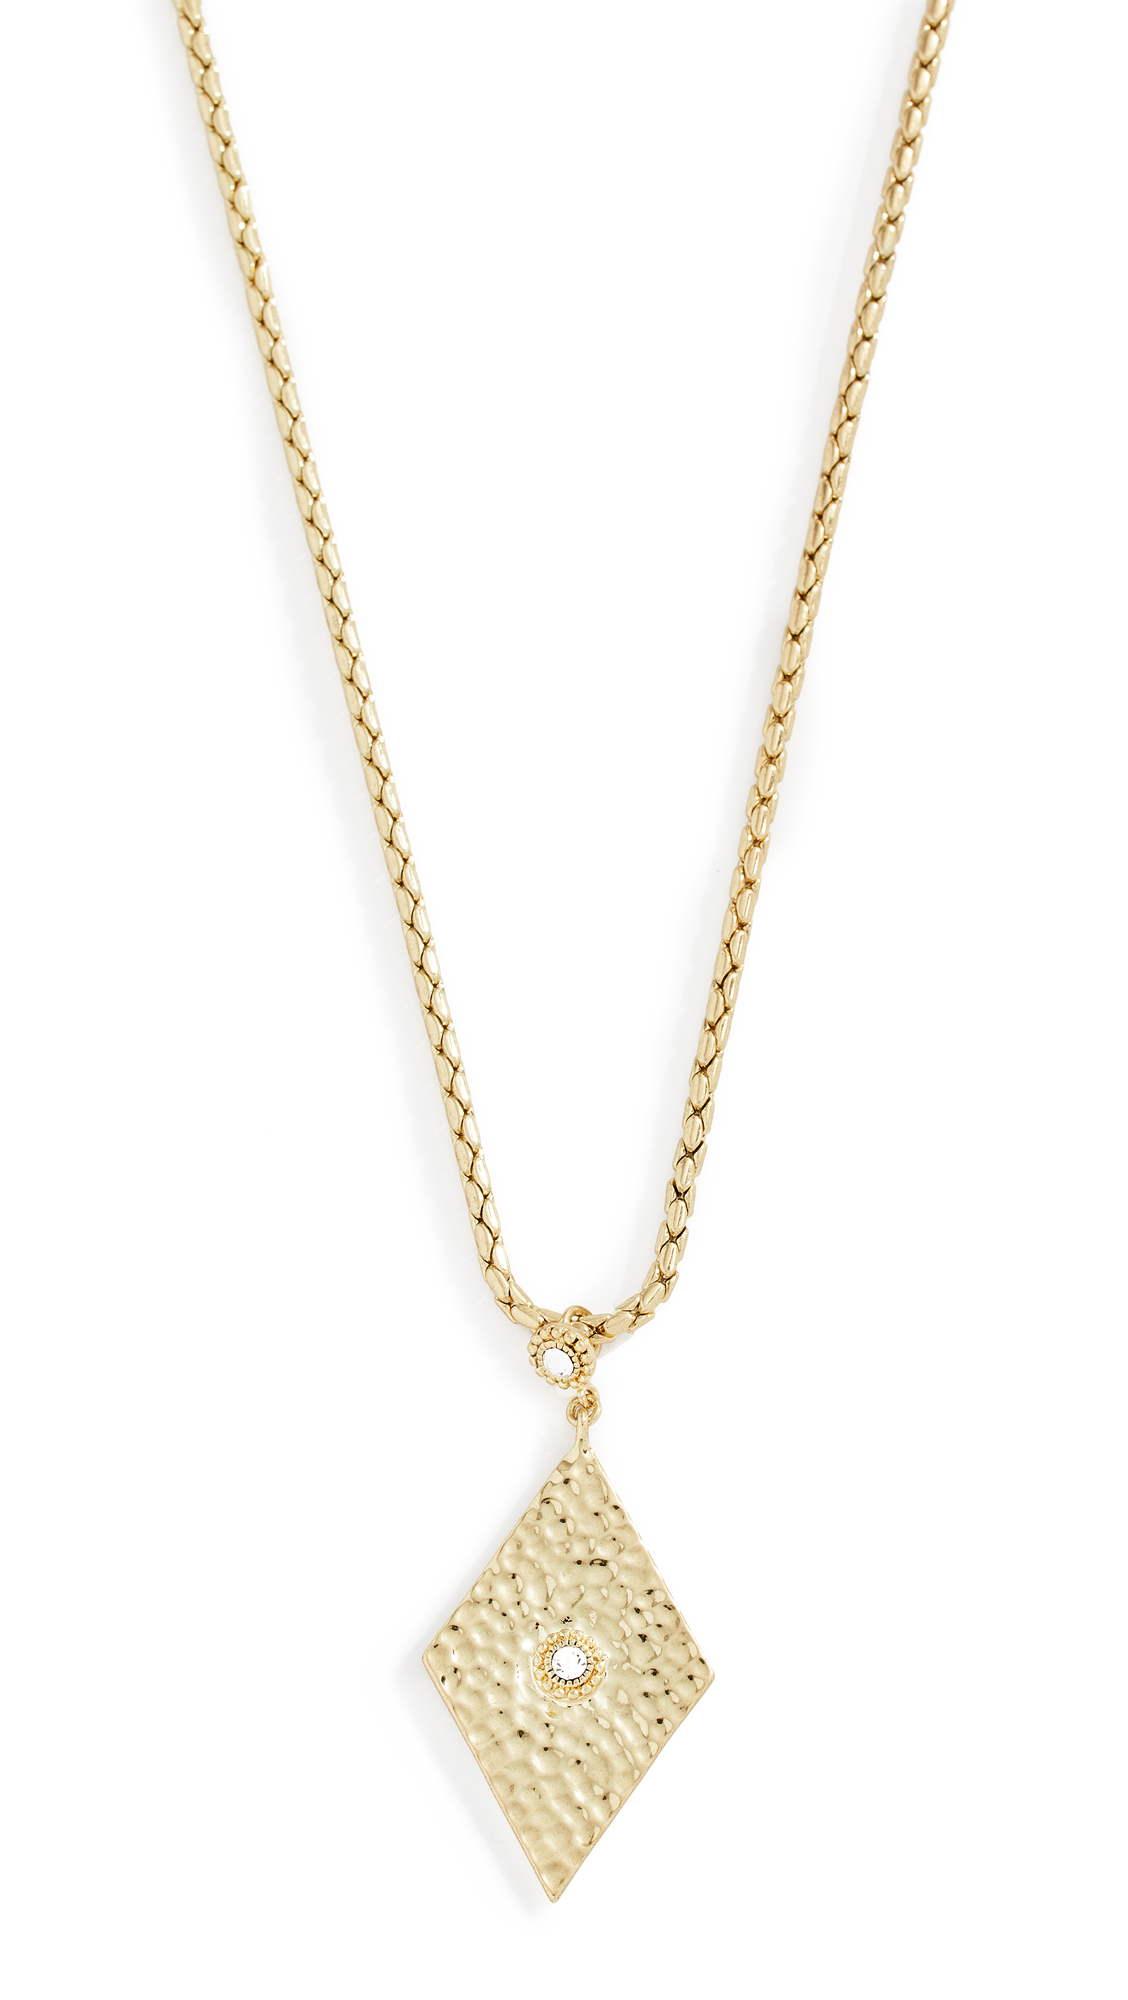 LUV AJ Hammered Triangle Charm Necklace in Yellow Gold